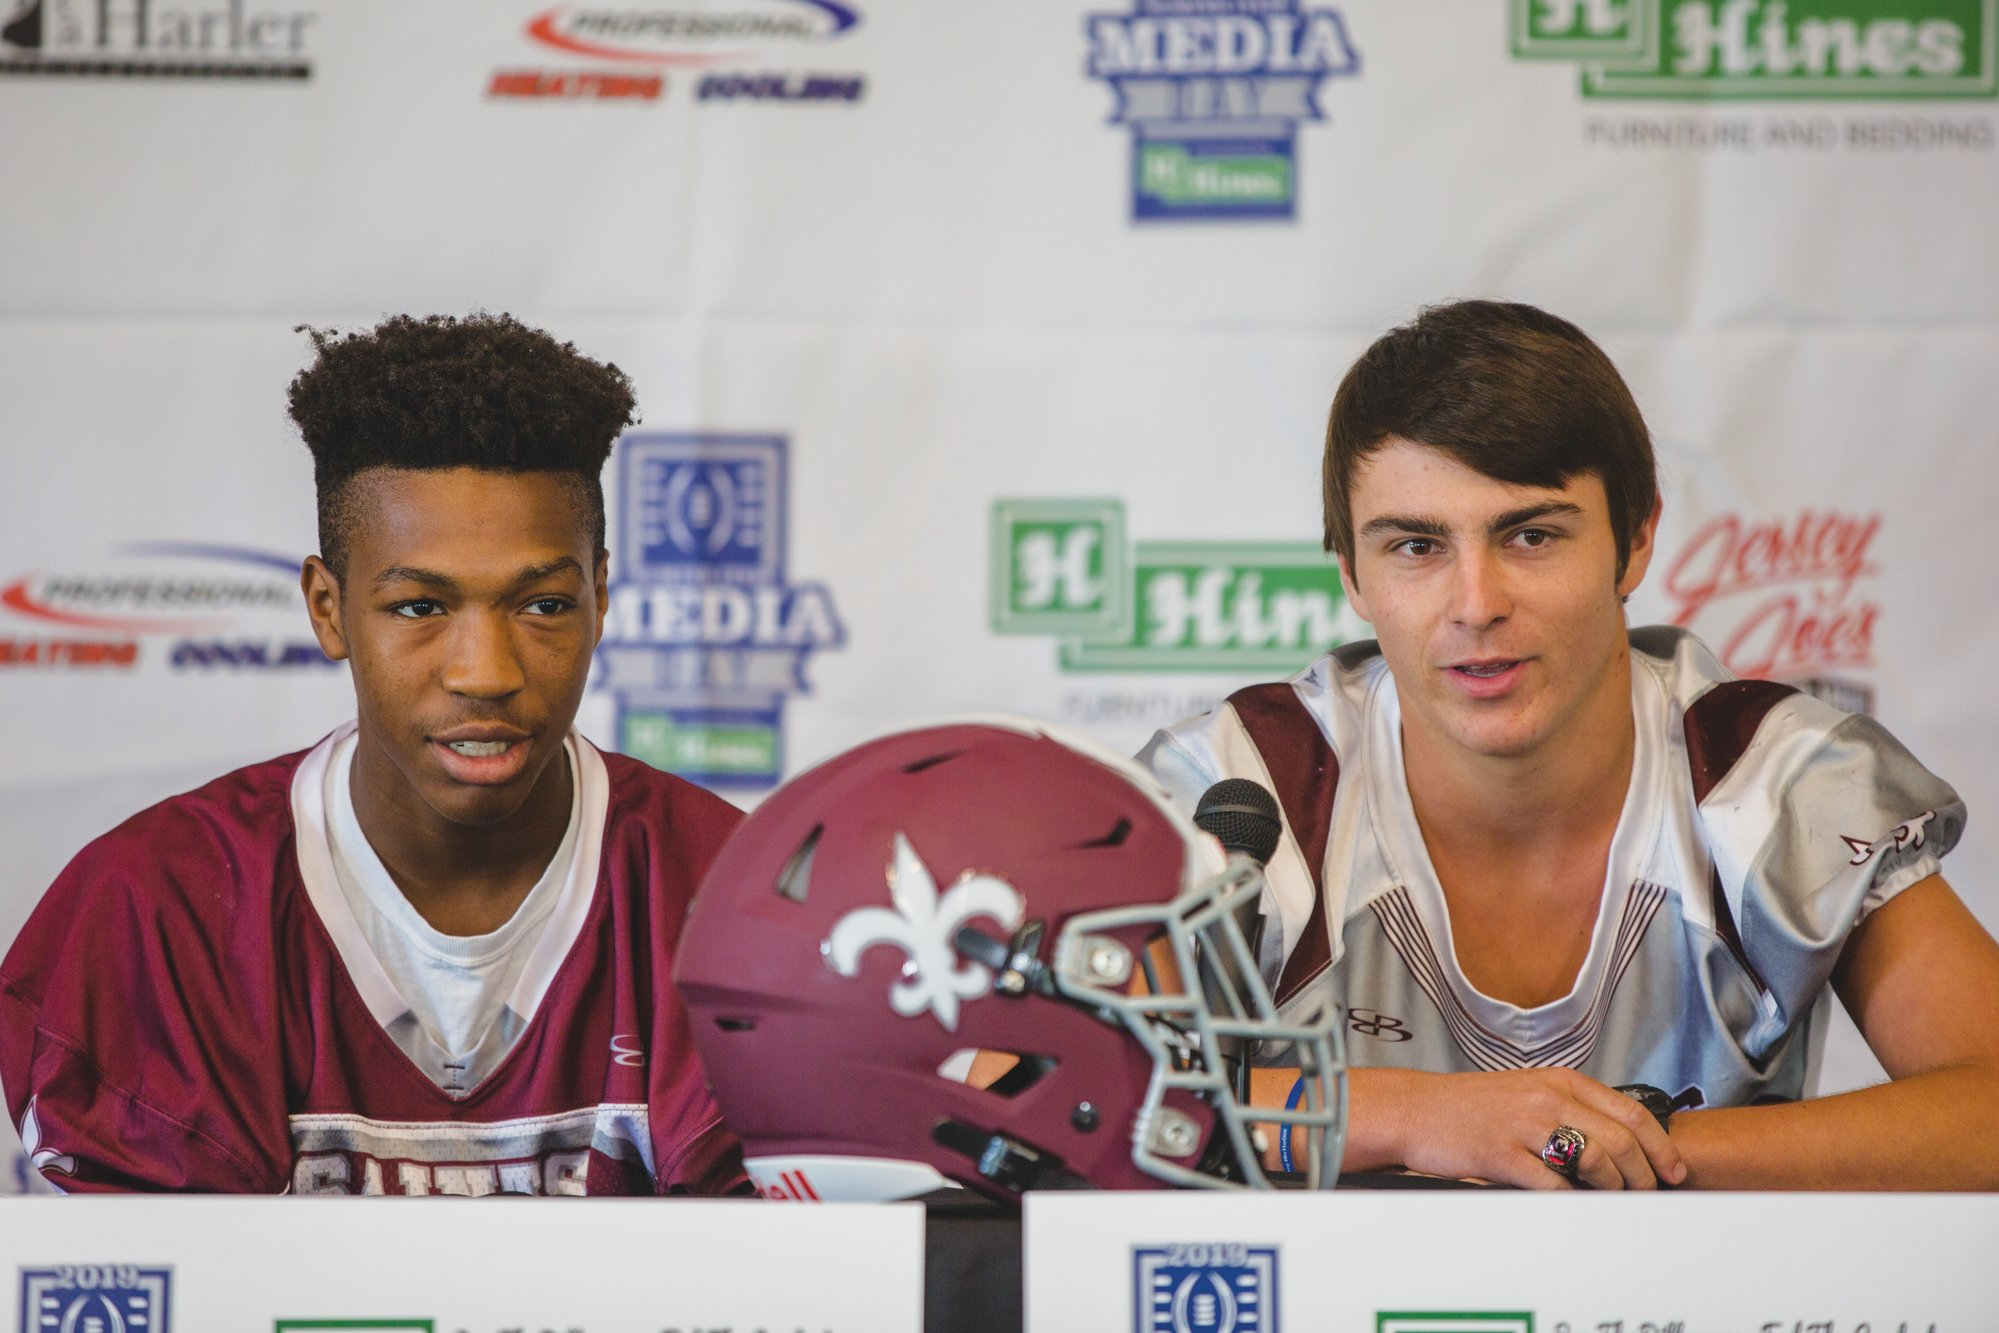 Zyan Gillmore, left, and Wells Robinson of Clarendon Hall talk during the 2019 Sumter Item Media Day.